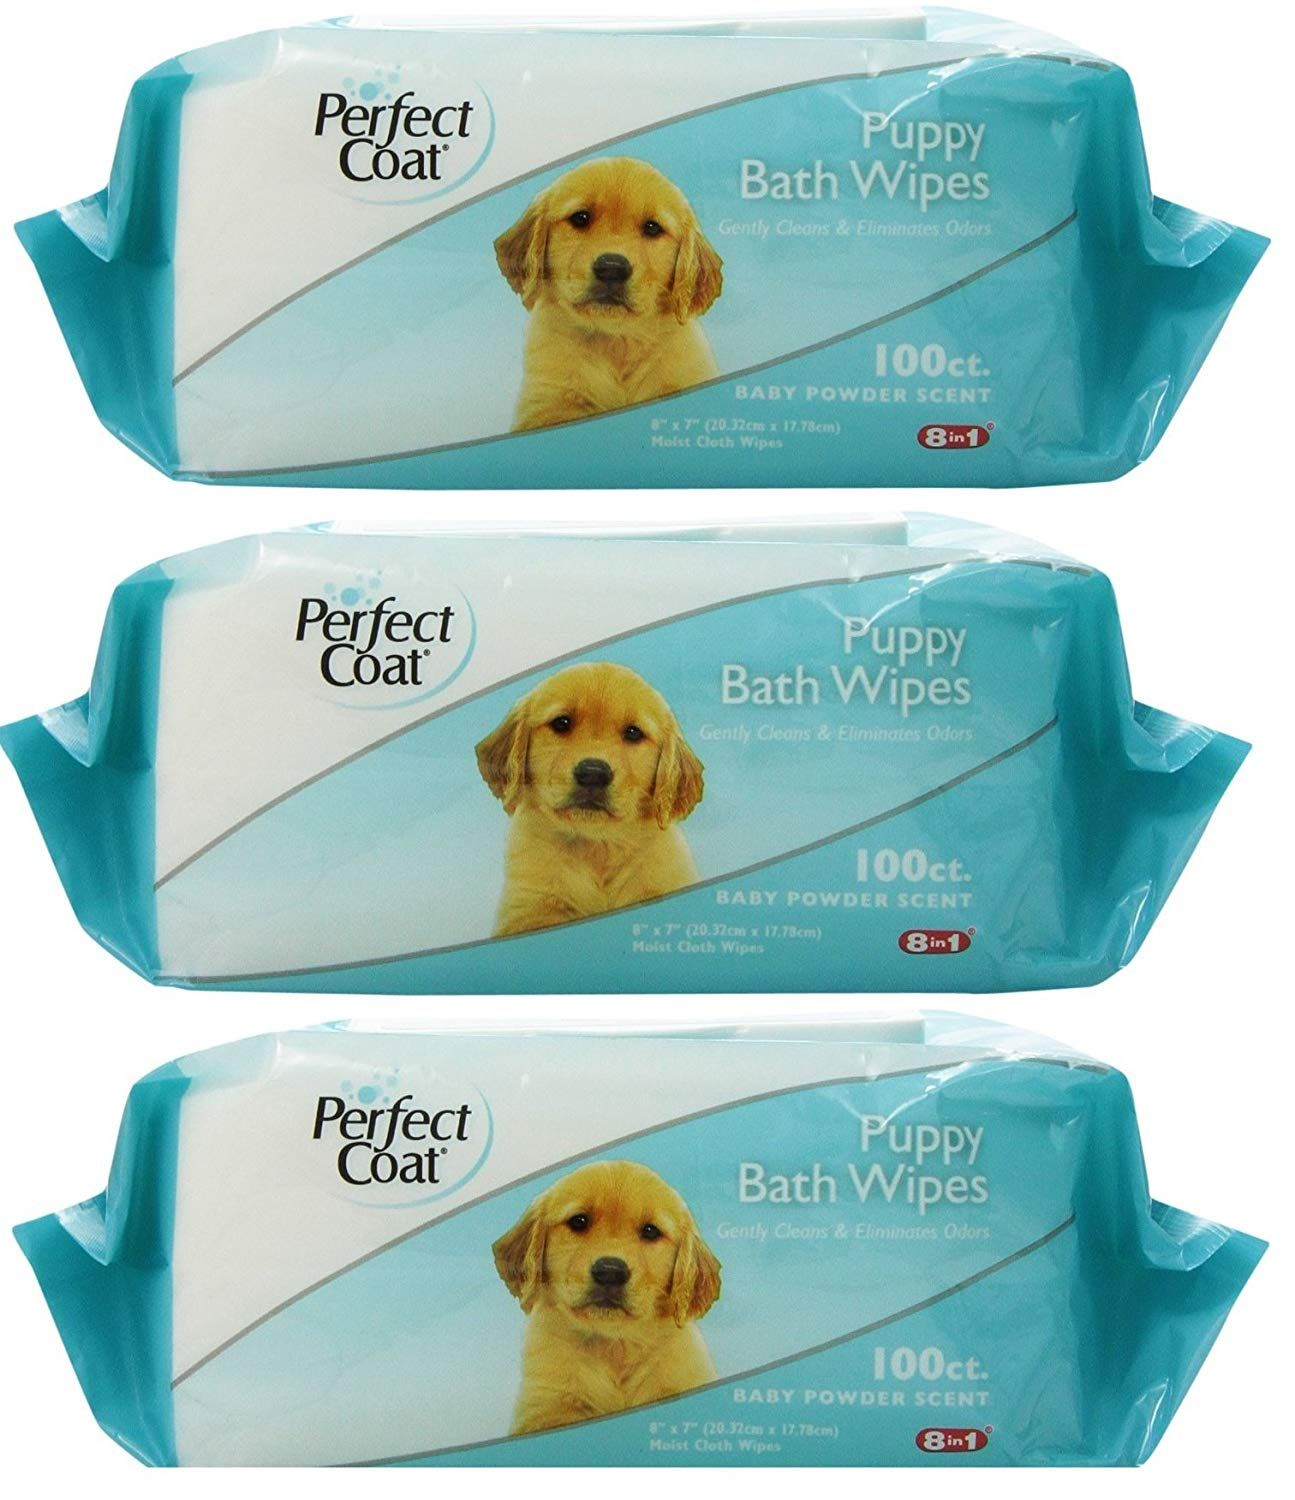 8in1 Perfect Coat Bath Wipes Tub 300 Total 3 Packs With 100